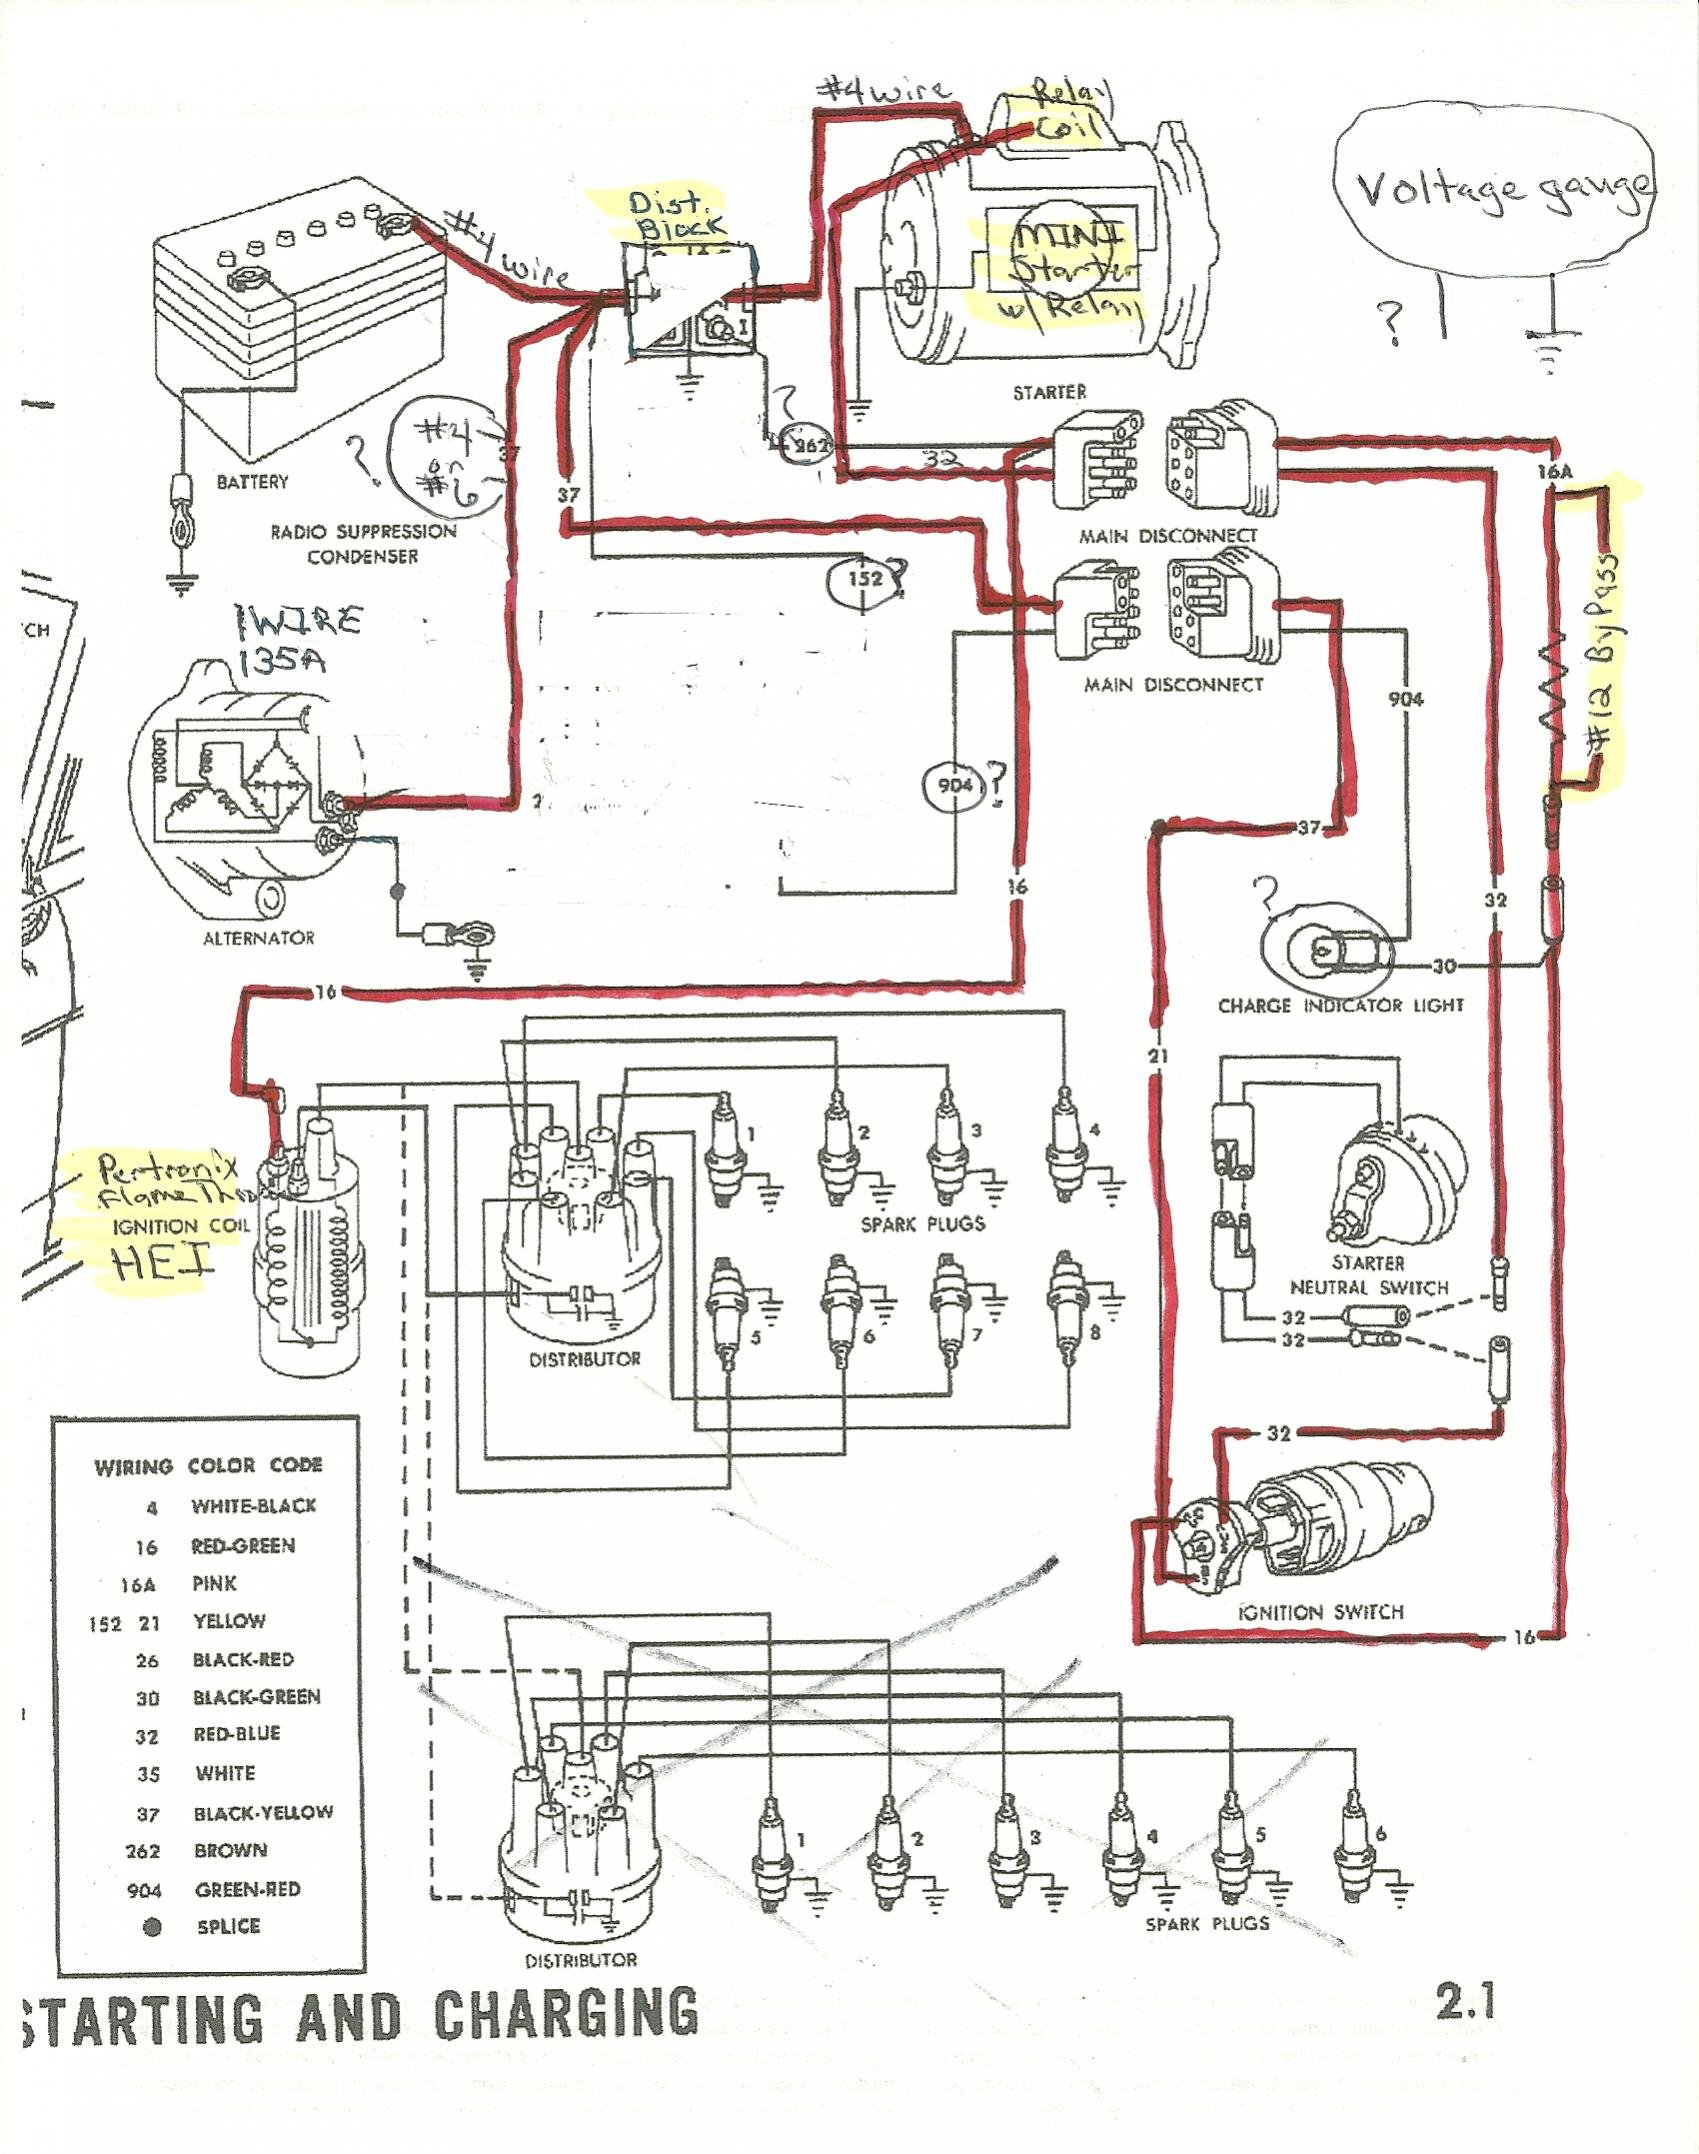 1969 Mustang Alternator Wiring Diagram